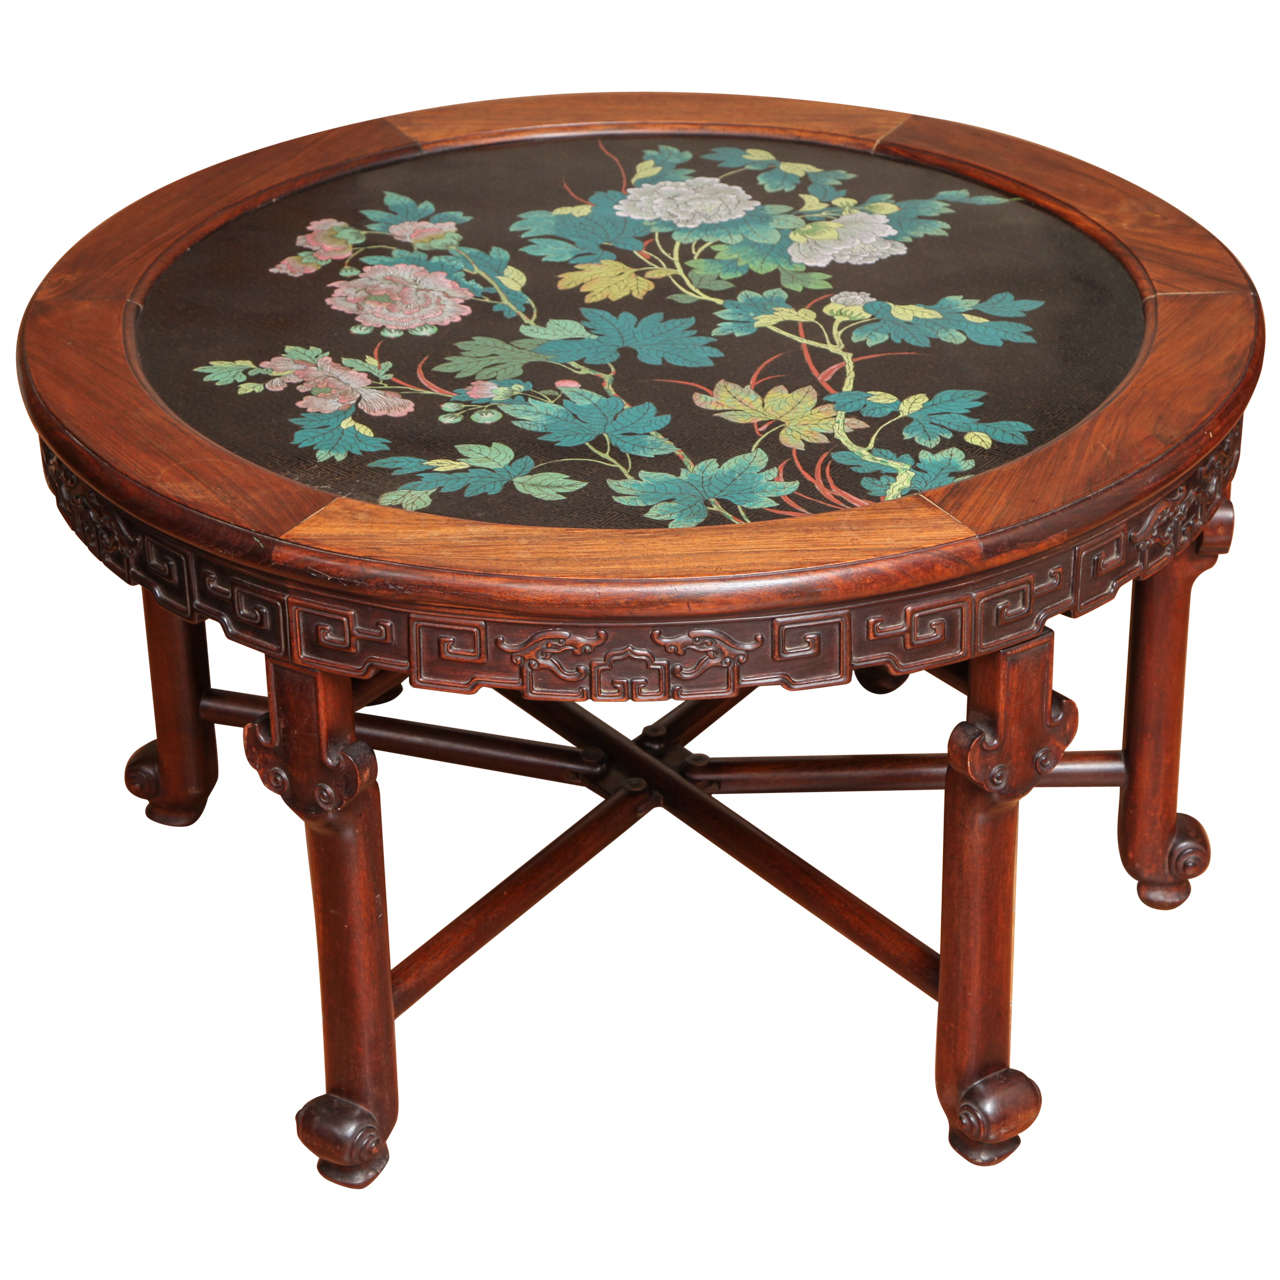 Antique Chinese Carved Rosewood and Floral Enamel Cloisonné Circular Table  For Sale - Antique Chinese Carved Rosewood And Floral Enamel Cloisonné Circular